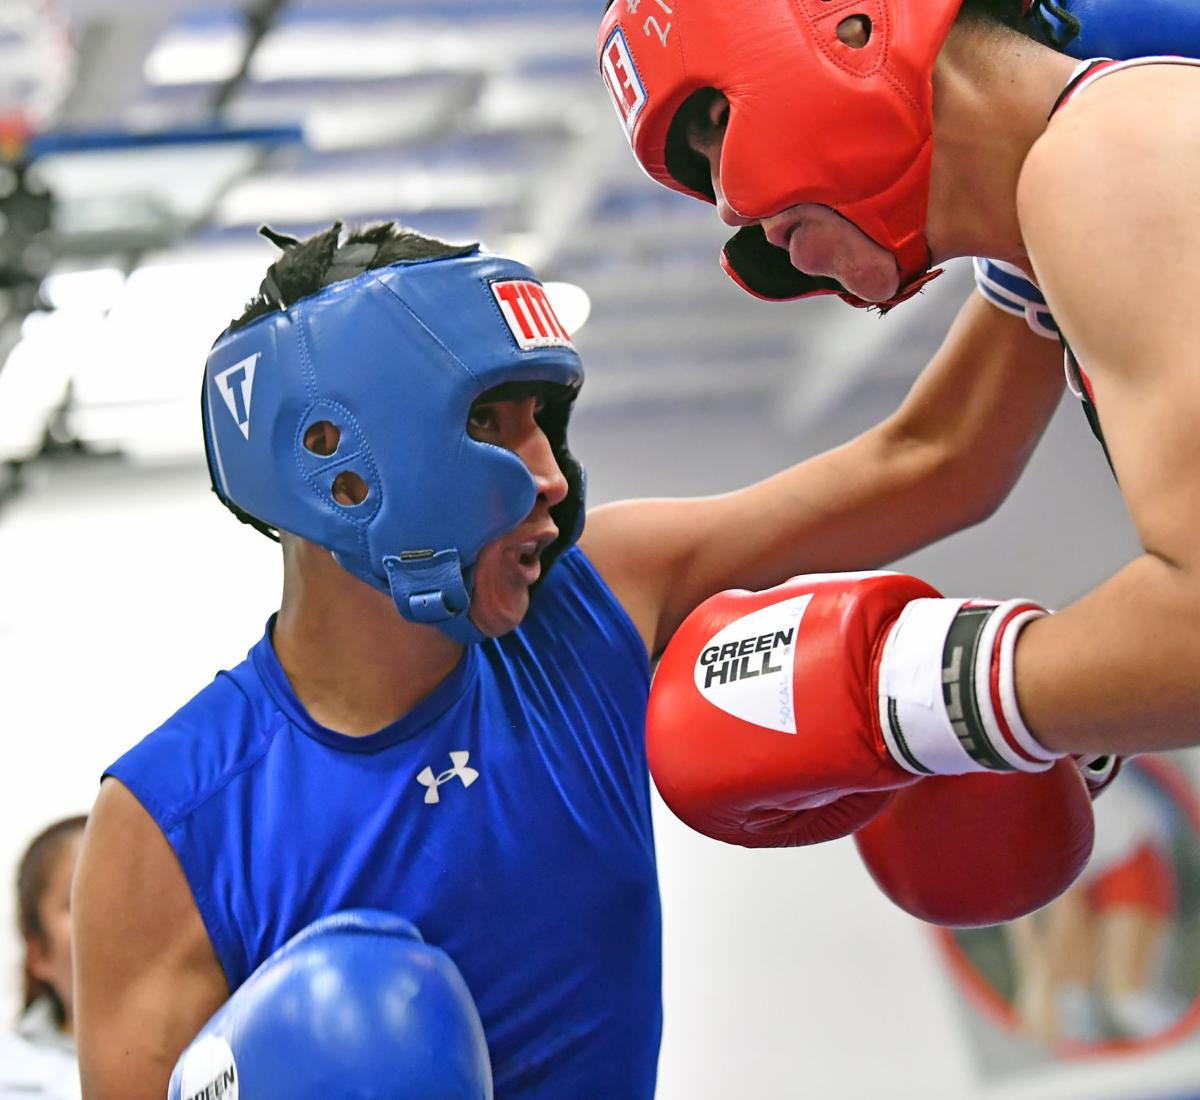 PHOTOS: Chino Youth Boxing Gobbler Gloves Sunday, Nov. 24